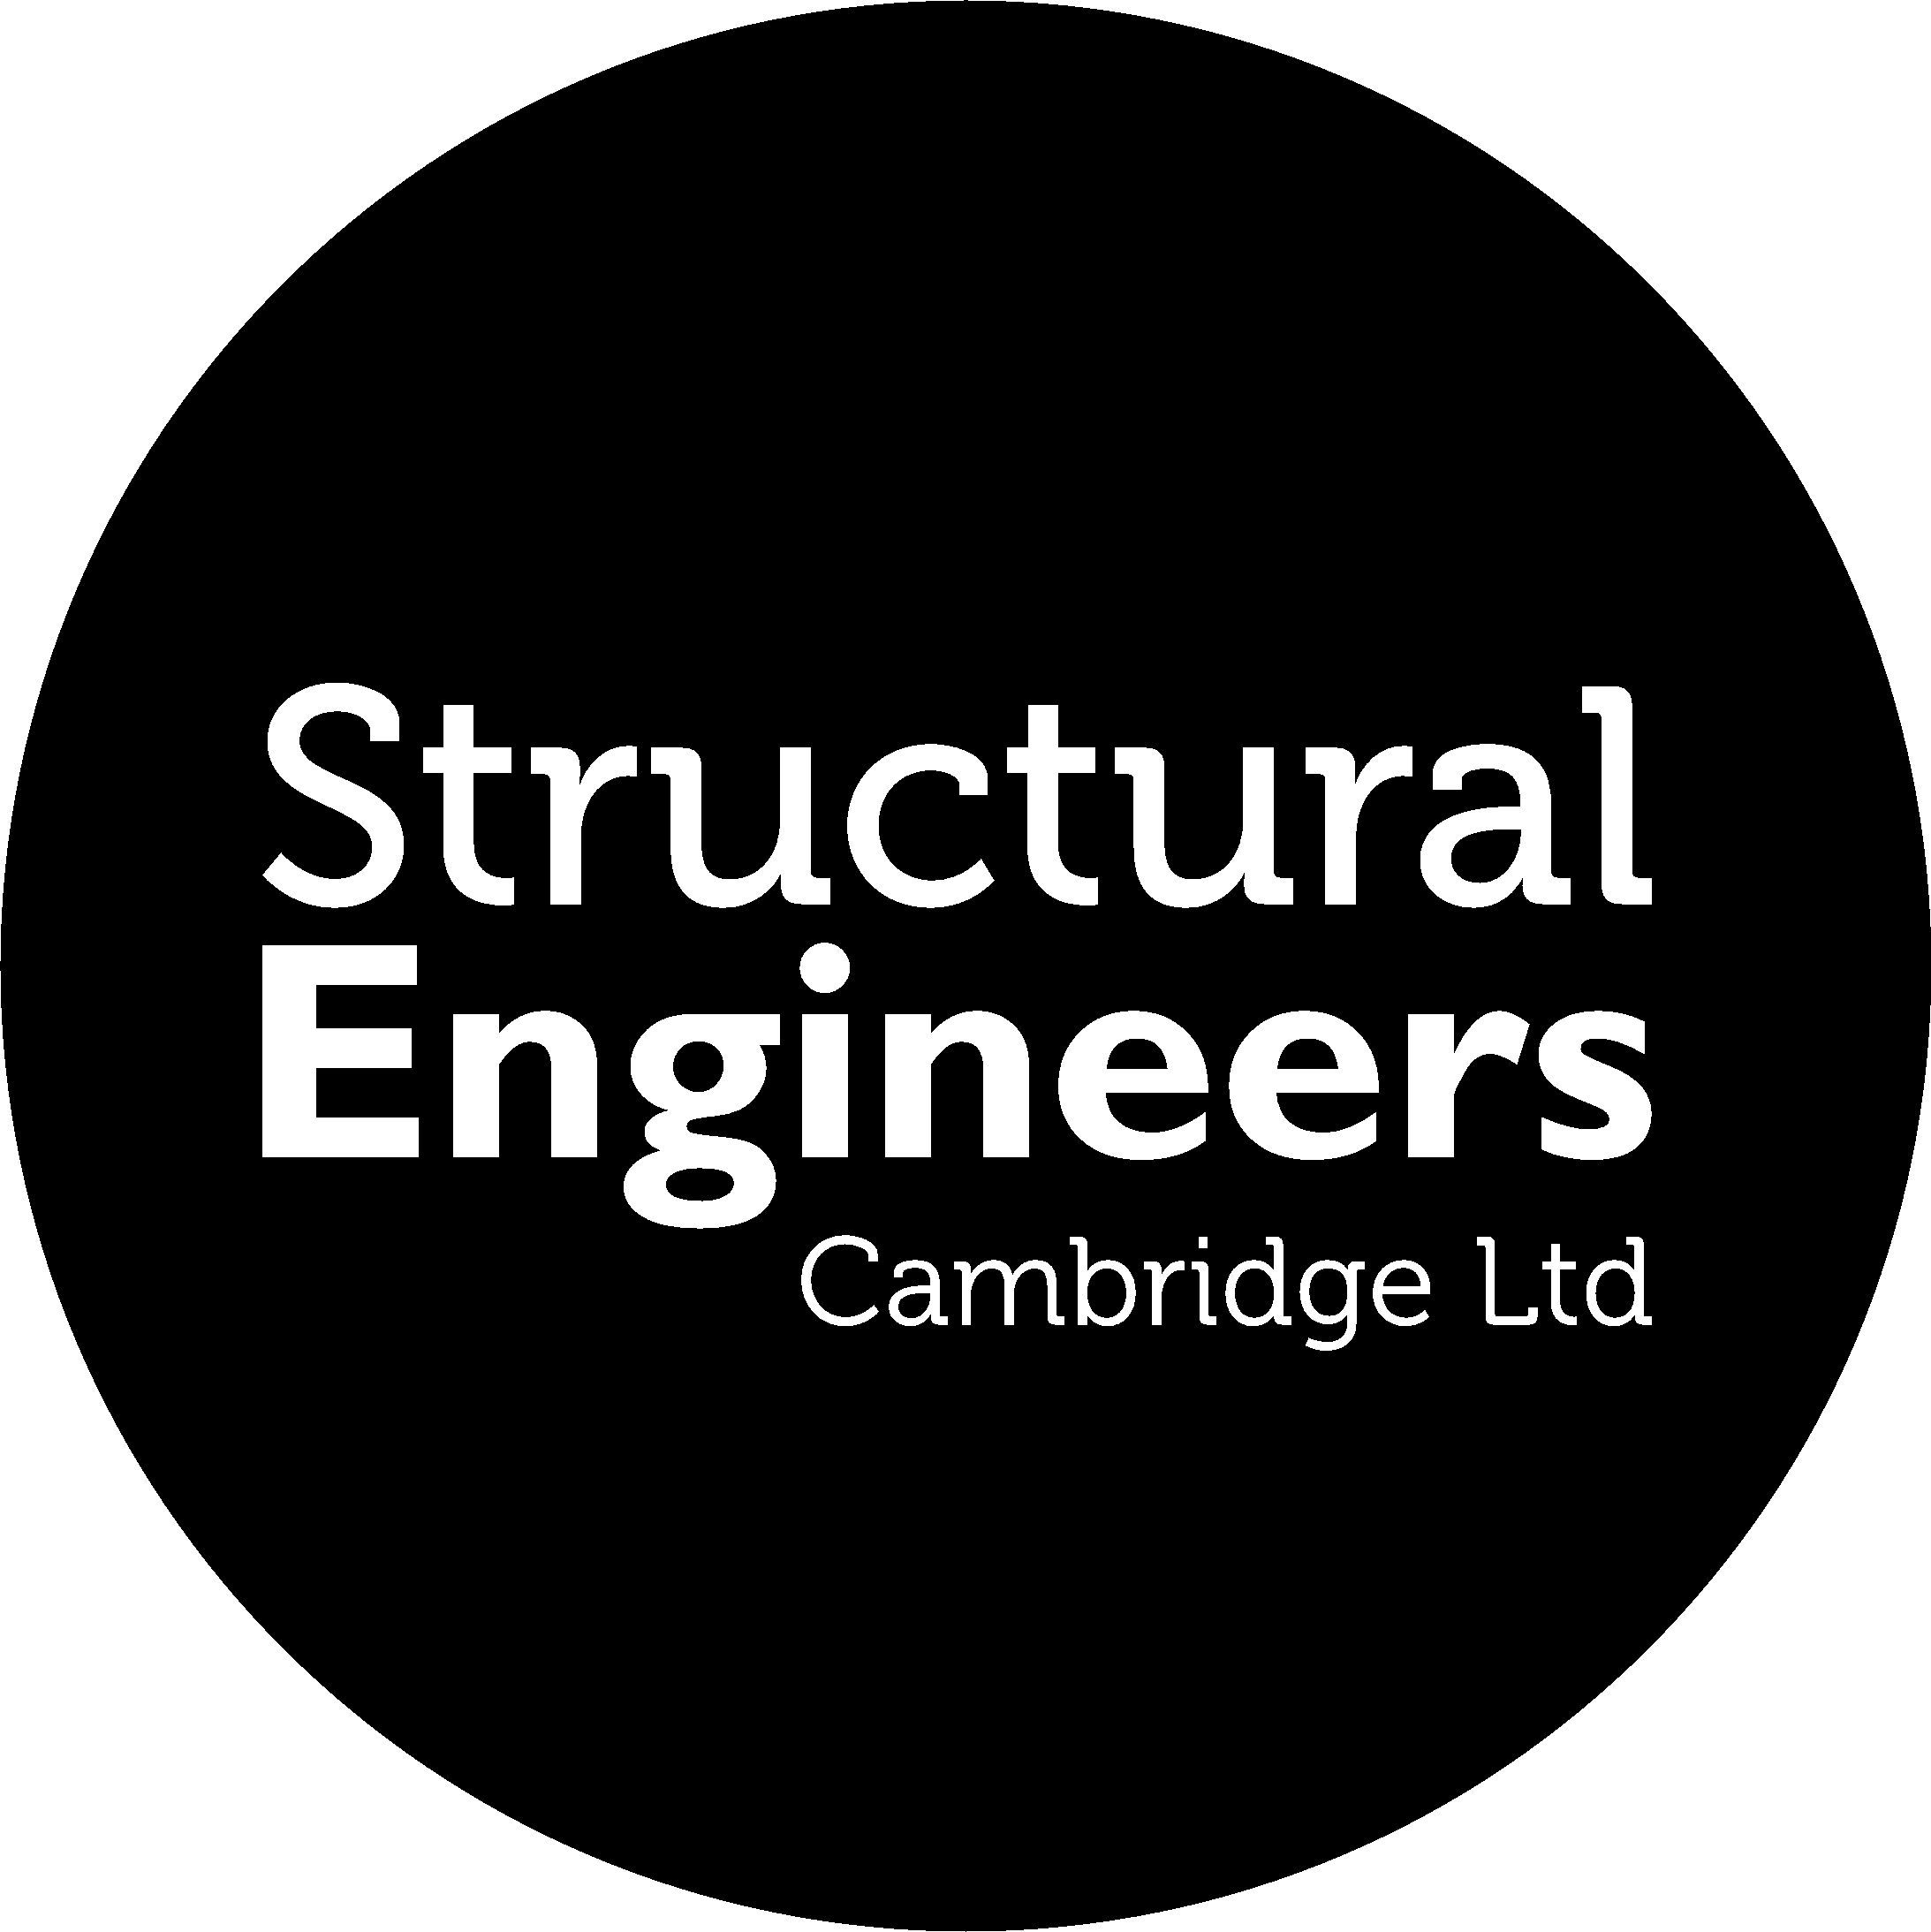 Charles Tallack - Structural Engineers Cambridge